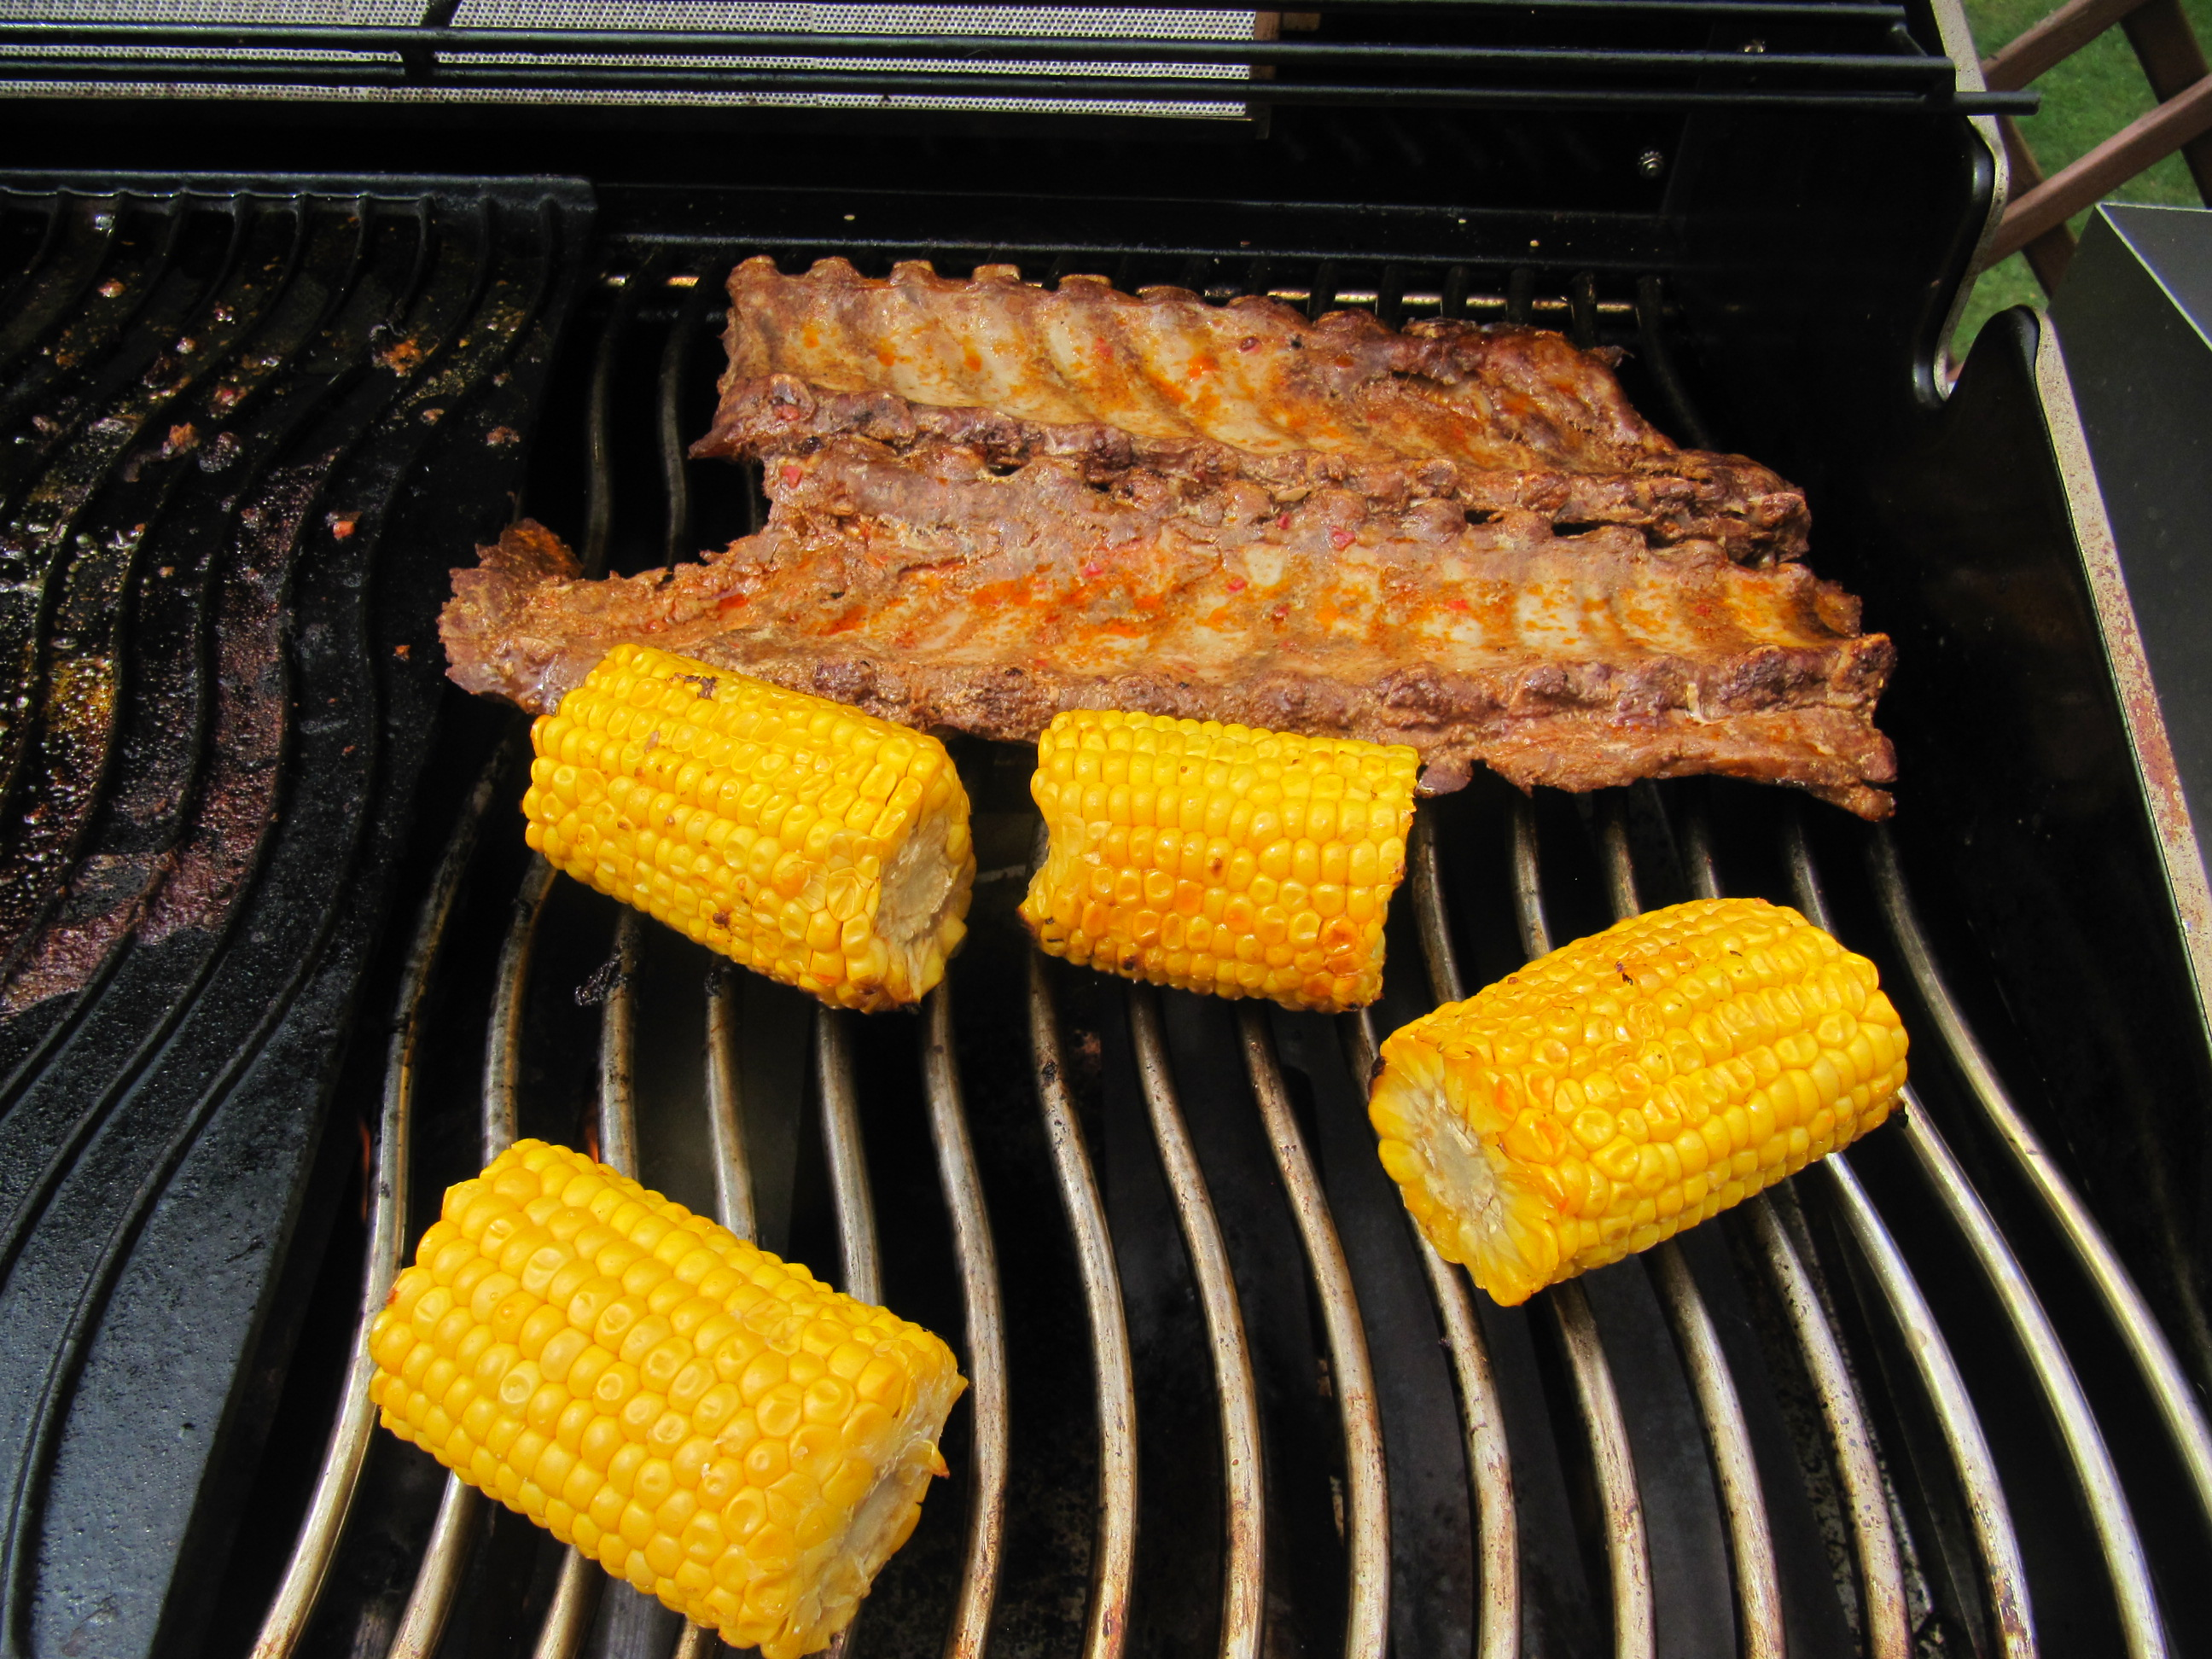 Spareribs Gasgrill Direkte Hitze : Spare ribs low and slow cooked mit gegrilltem mais und potato wedges